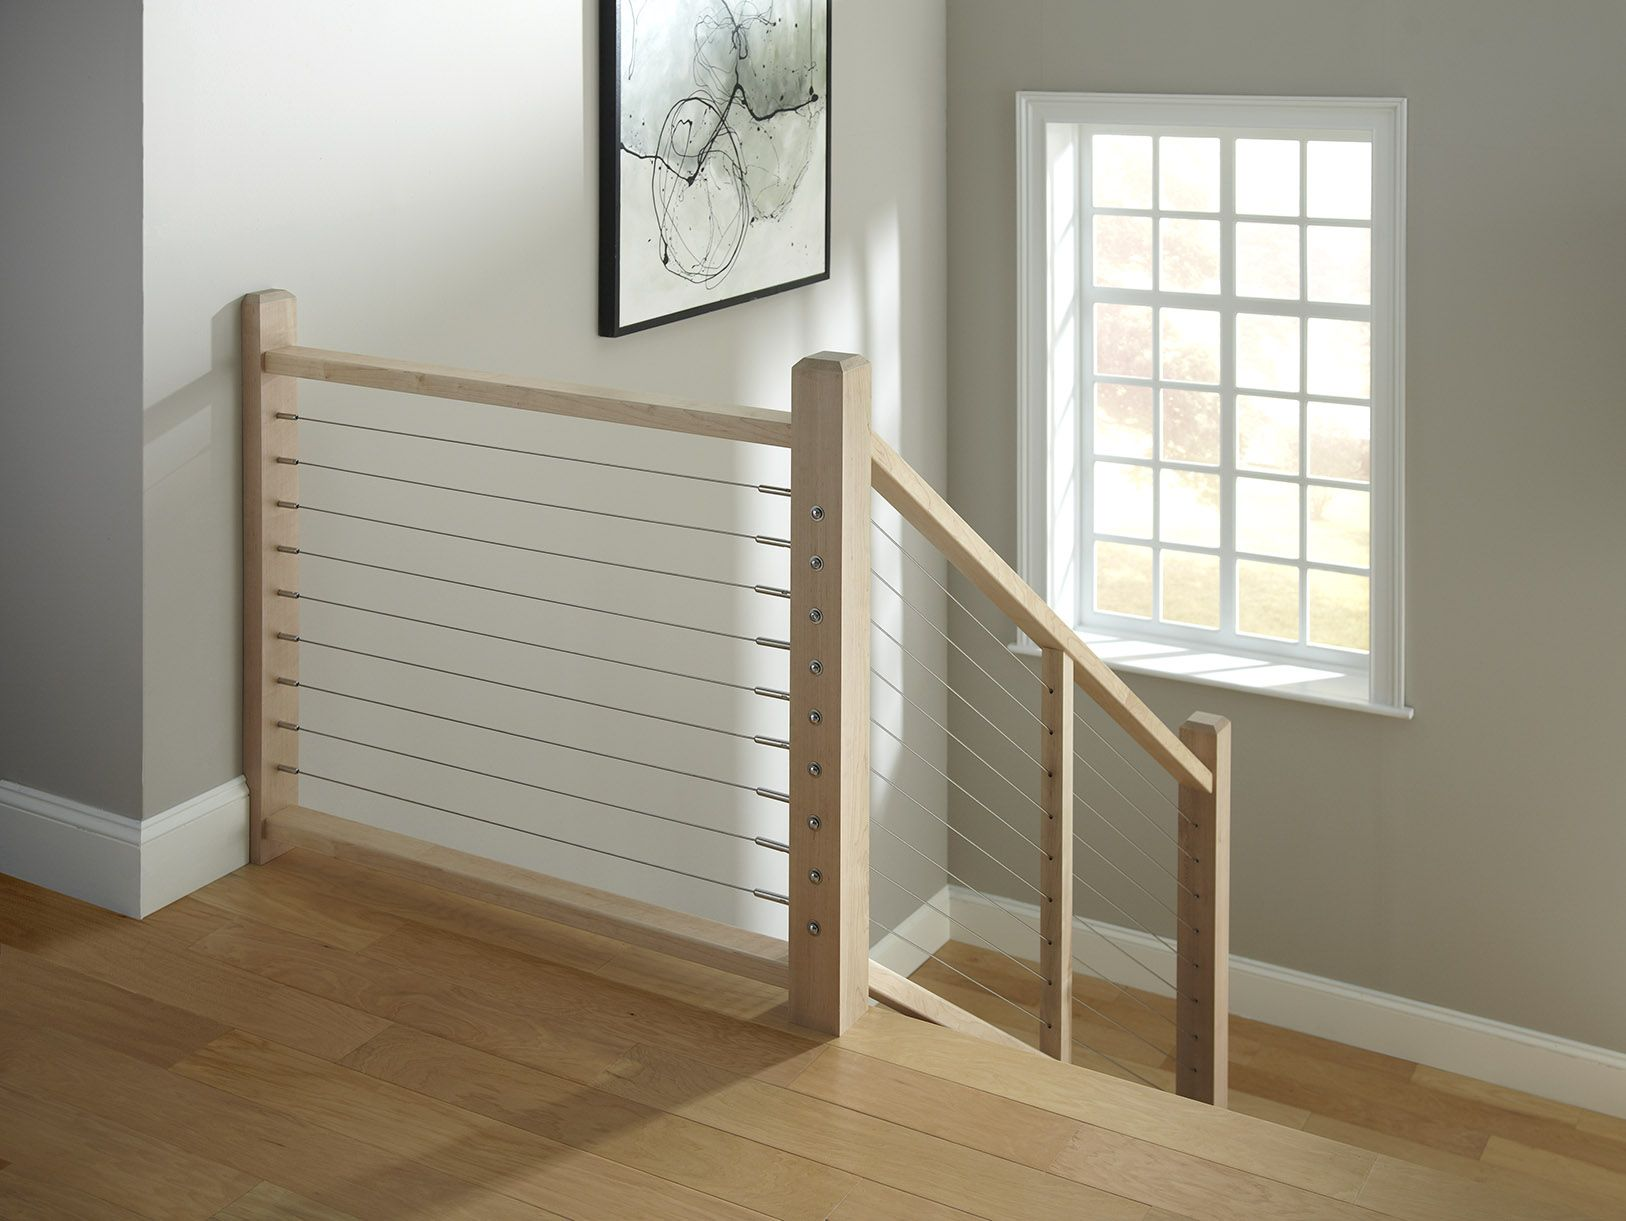 Best Combination Of 300 And 102 Series Cable Railing Systems 400 x 300